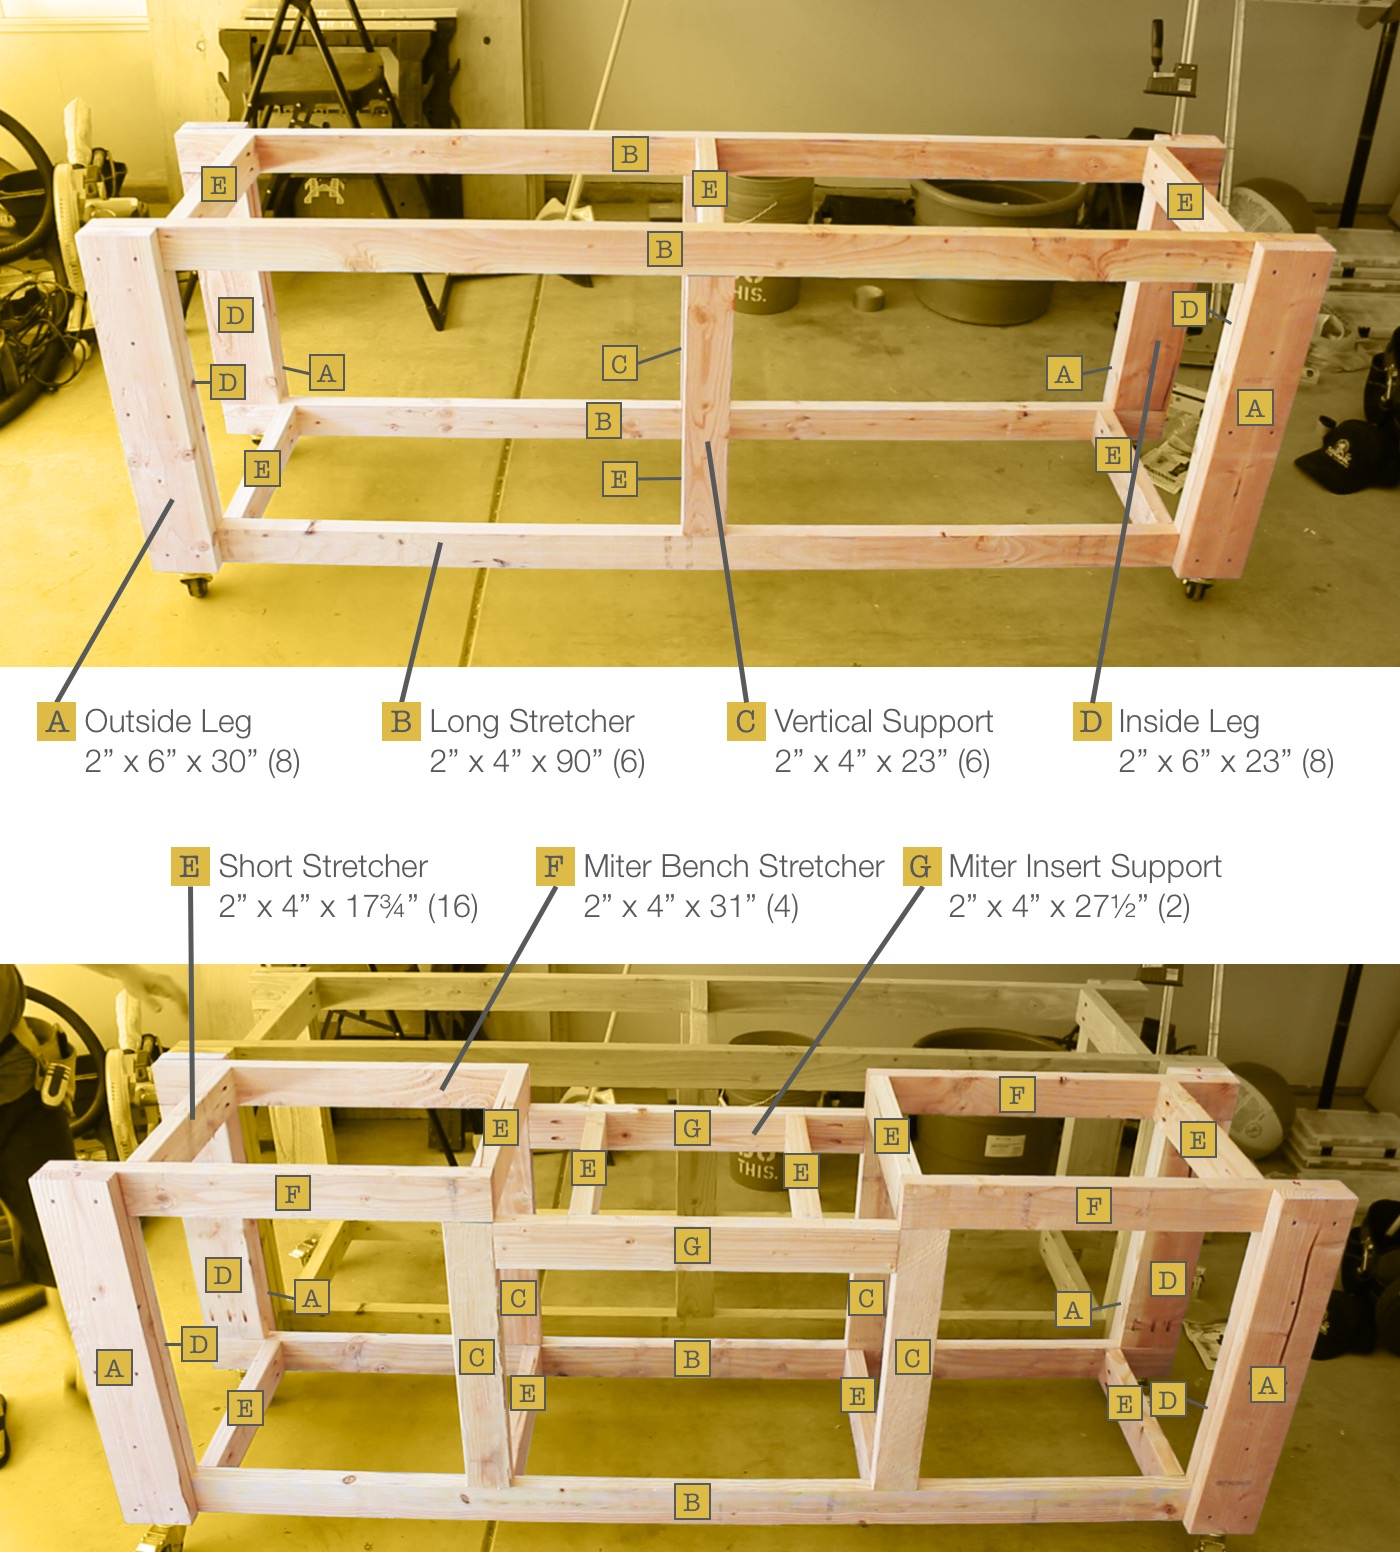 detailed plans for a mobile modular workbench